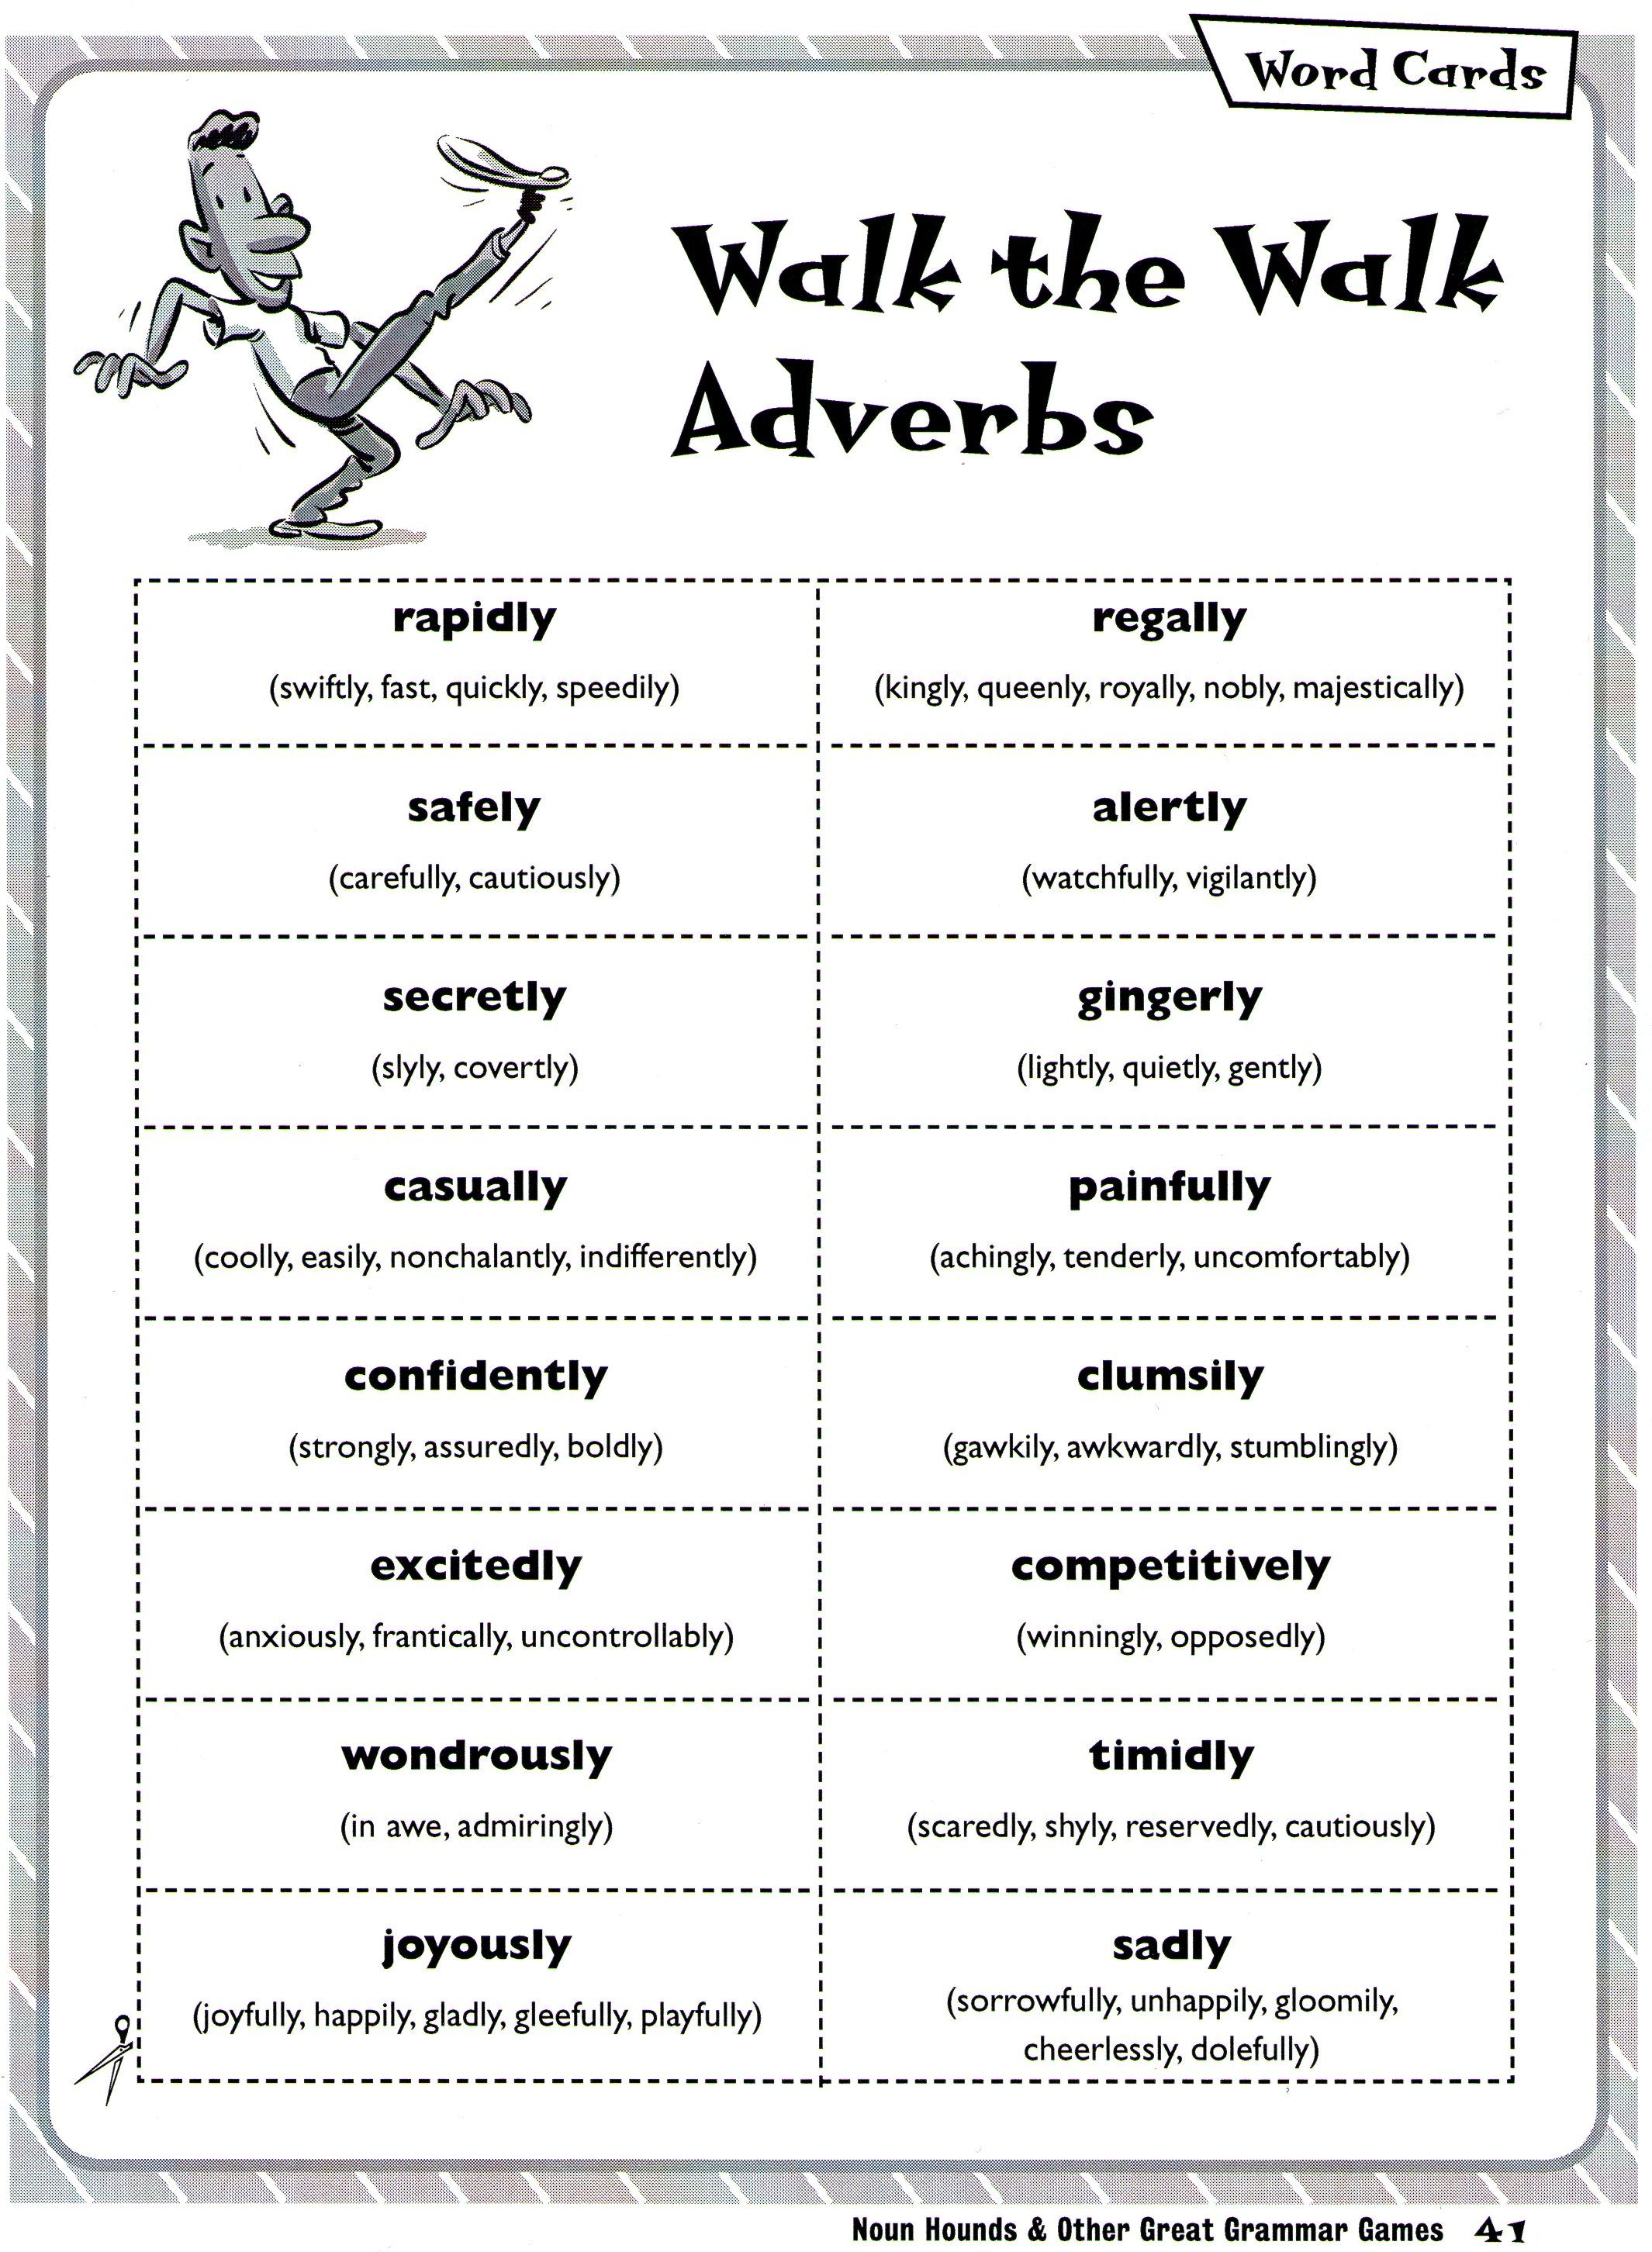 Walk The Walk Adverbs Charades